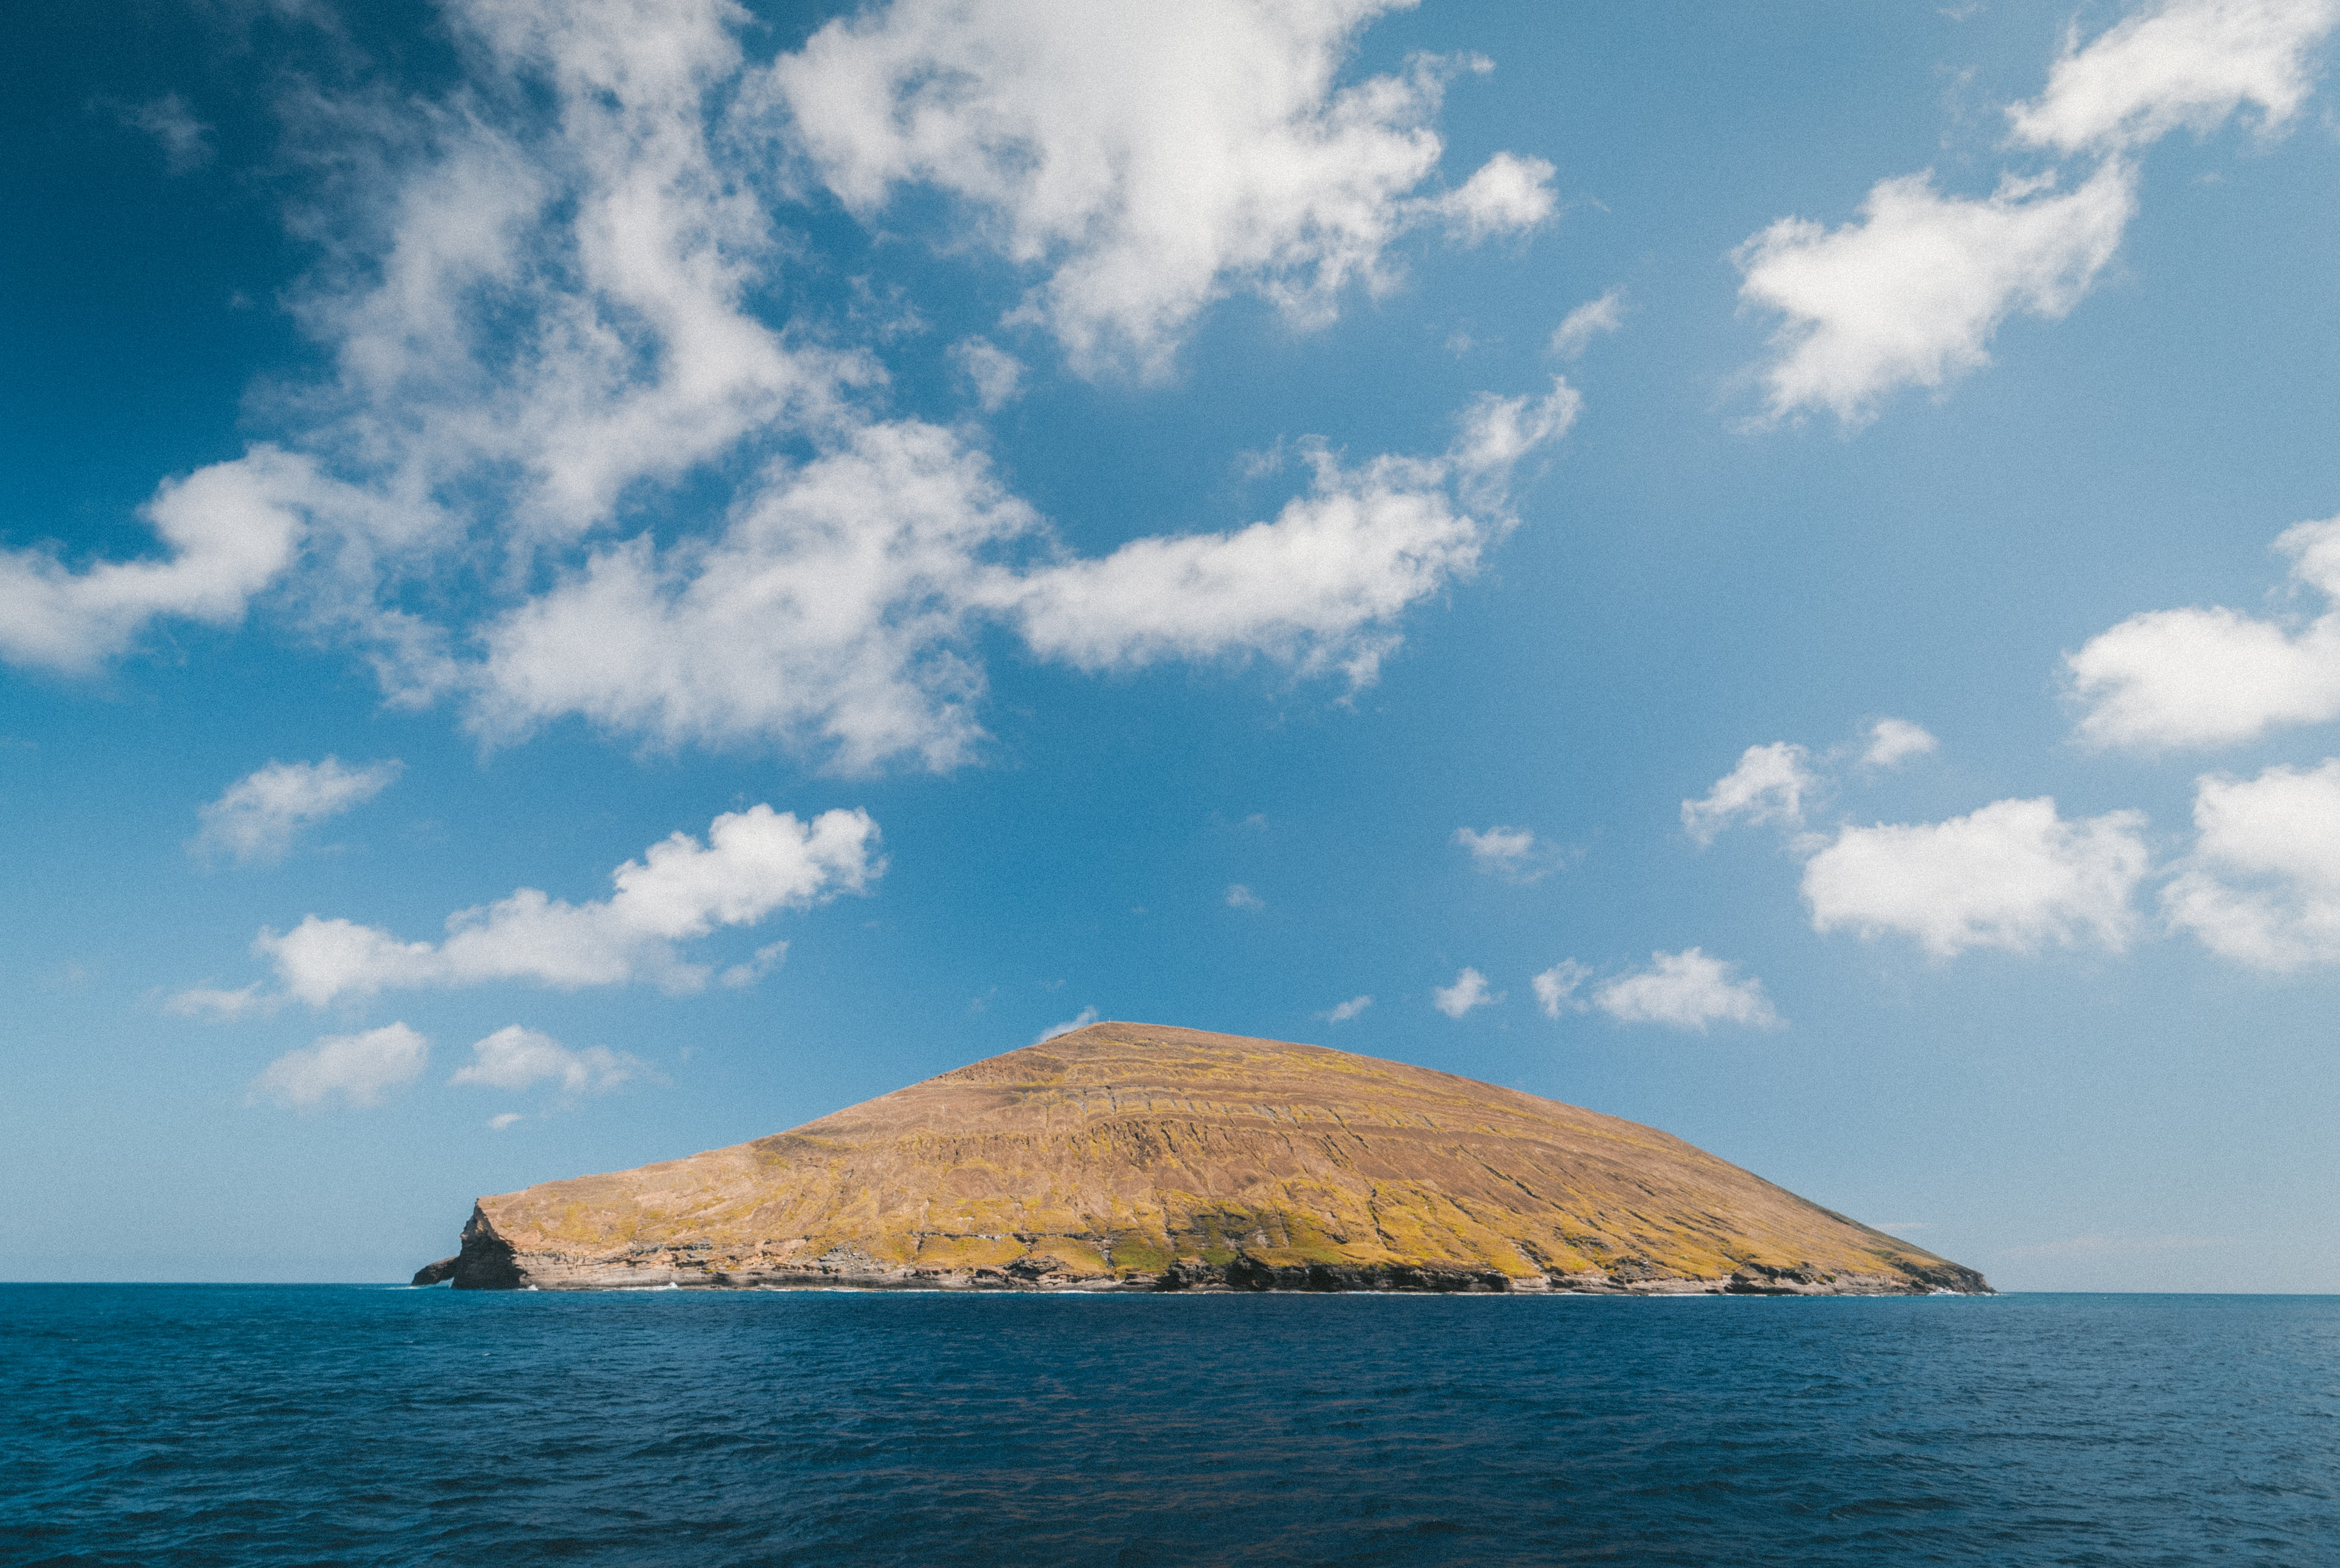 A small brown, grassy island in the middle of the blue ocean with a bright blue sky